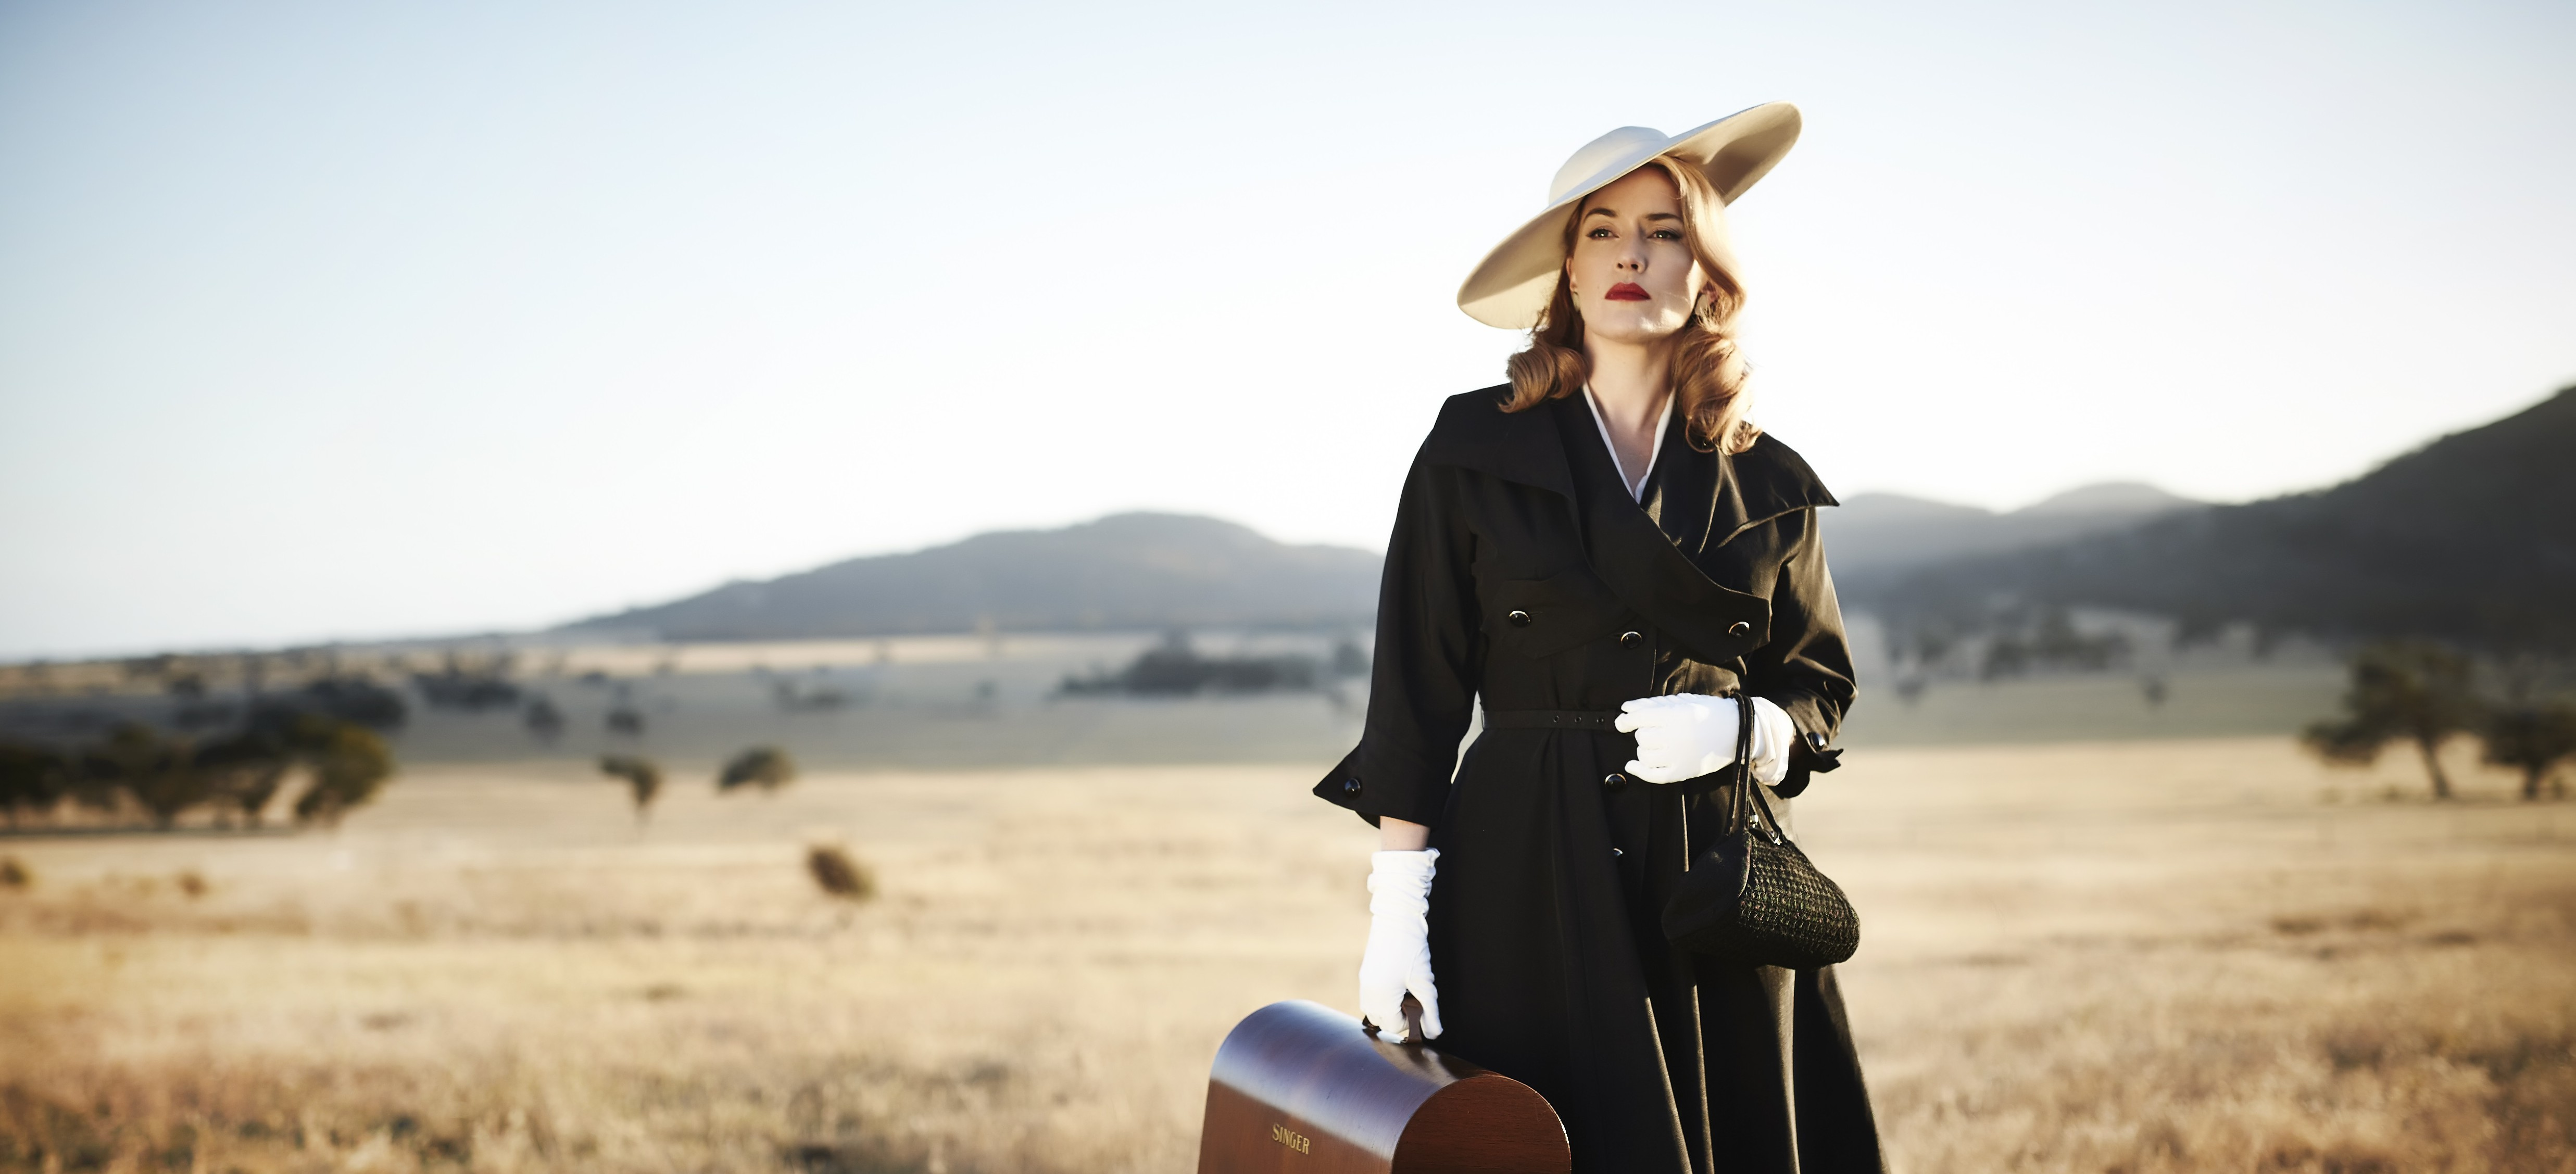 Our EP releases trailer for her latest film starring Kate Winslet